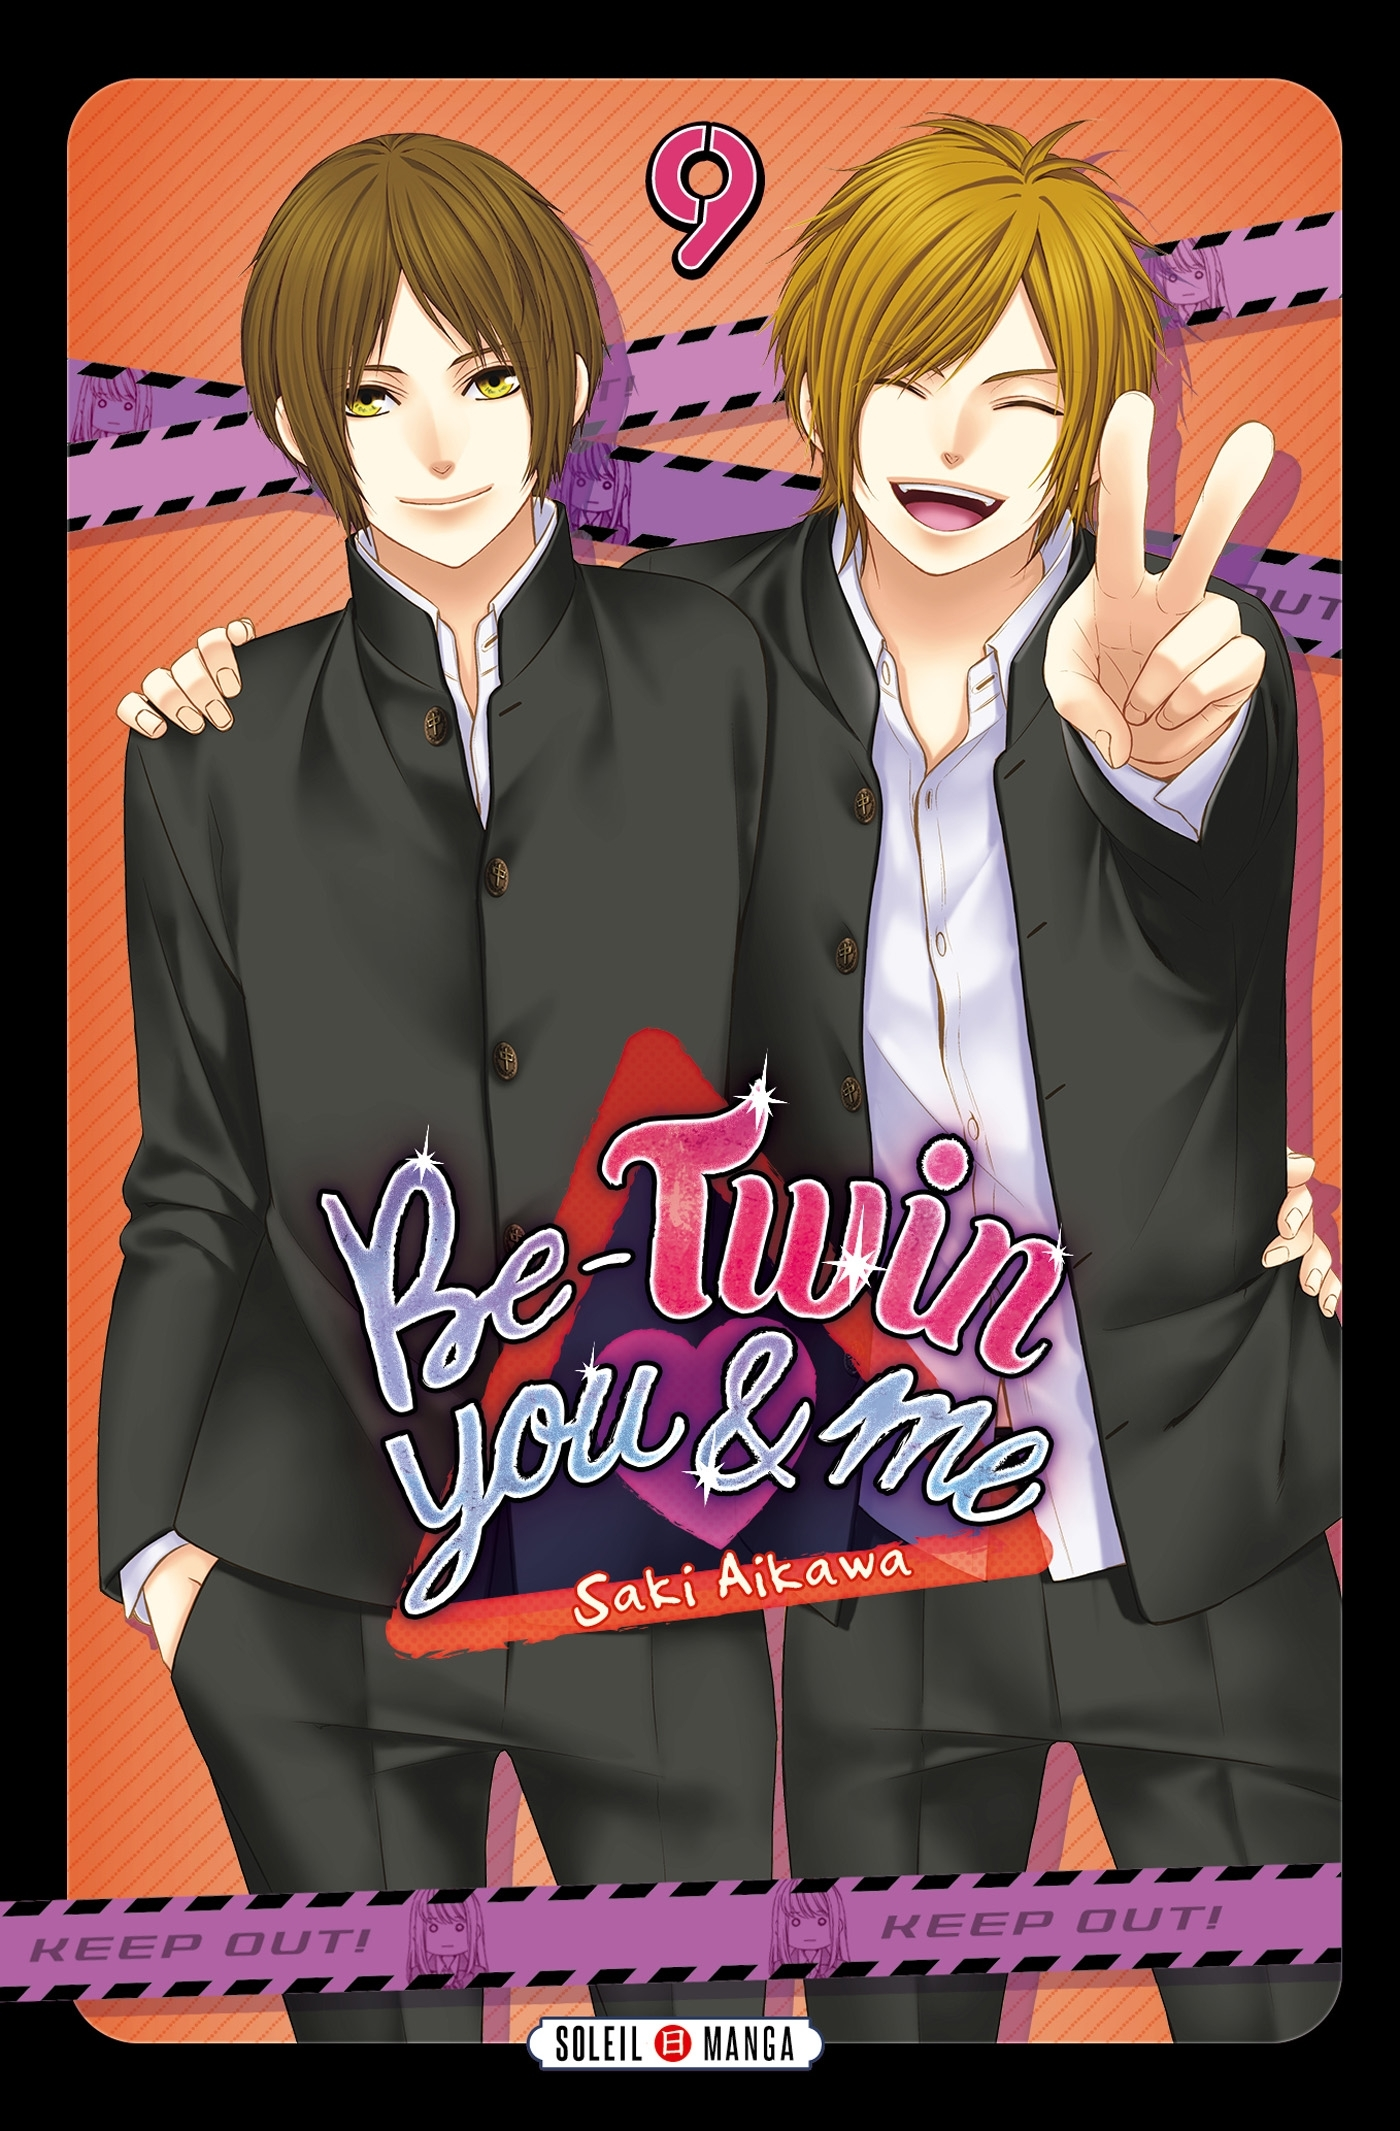 Be-Twin you & me 9